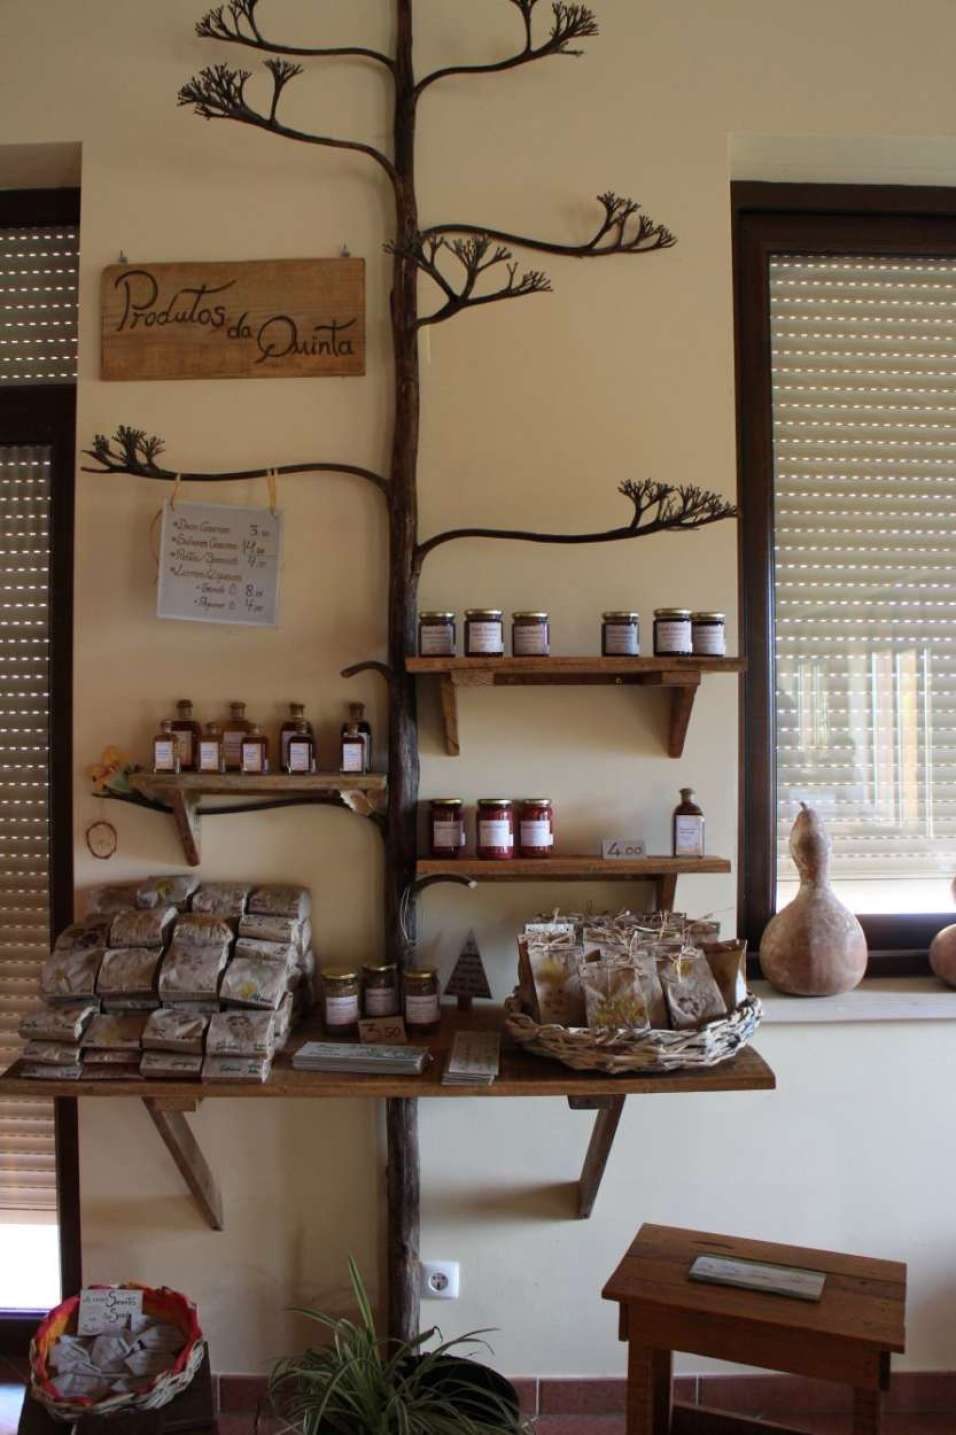 Some of the homemade products